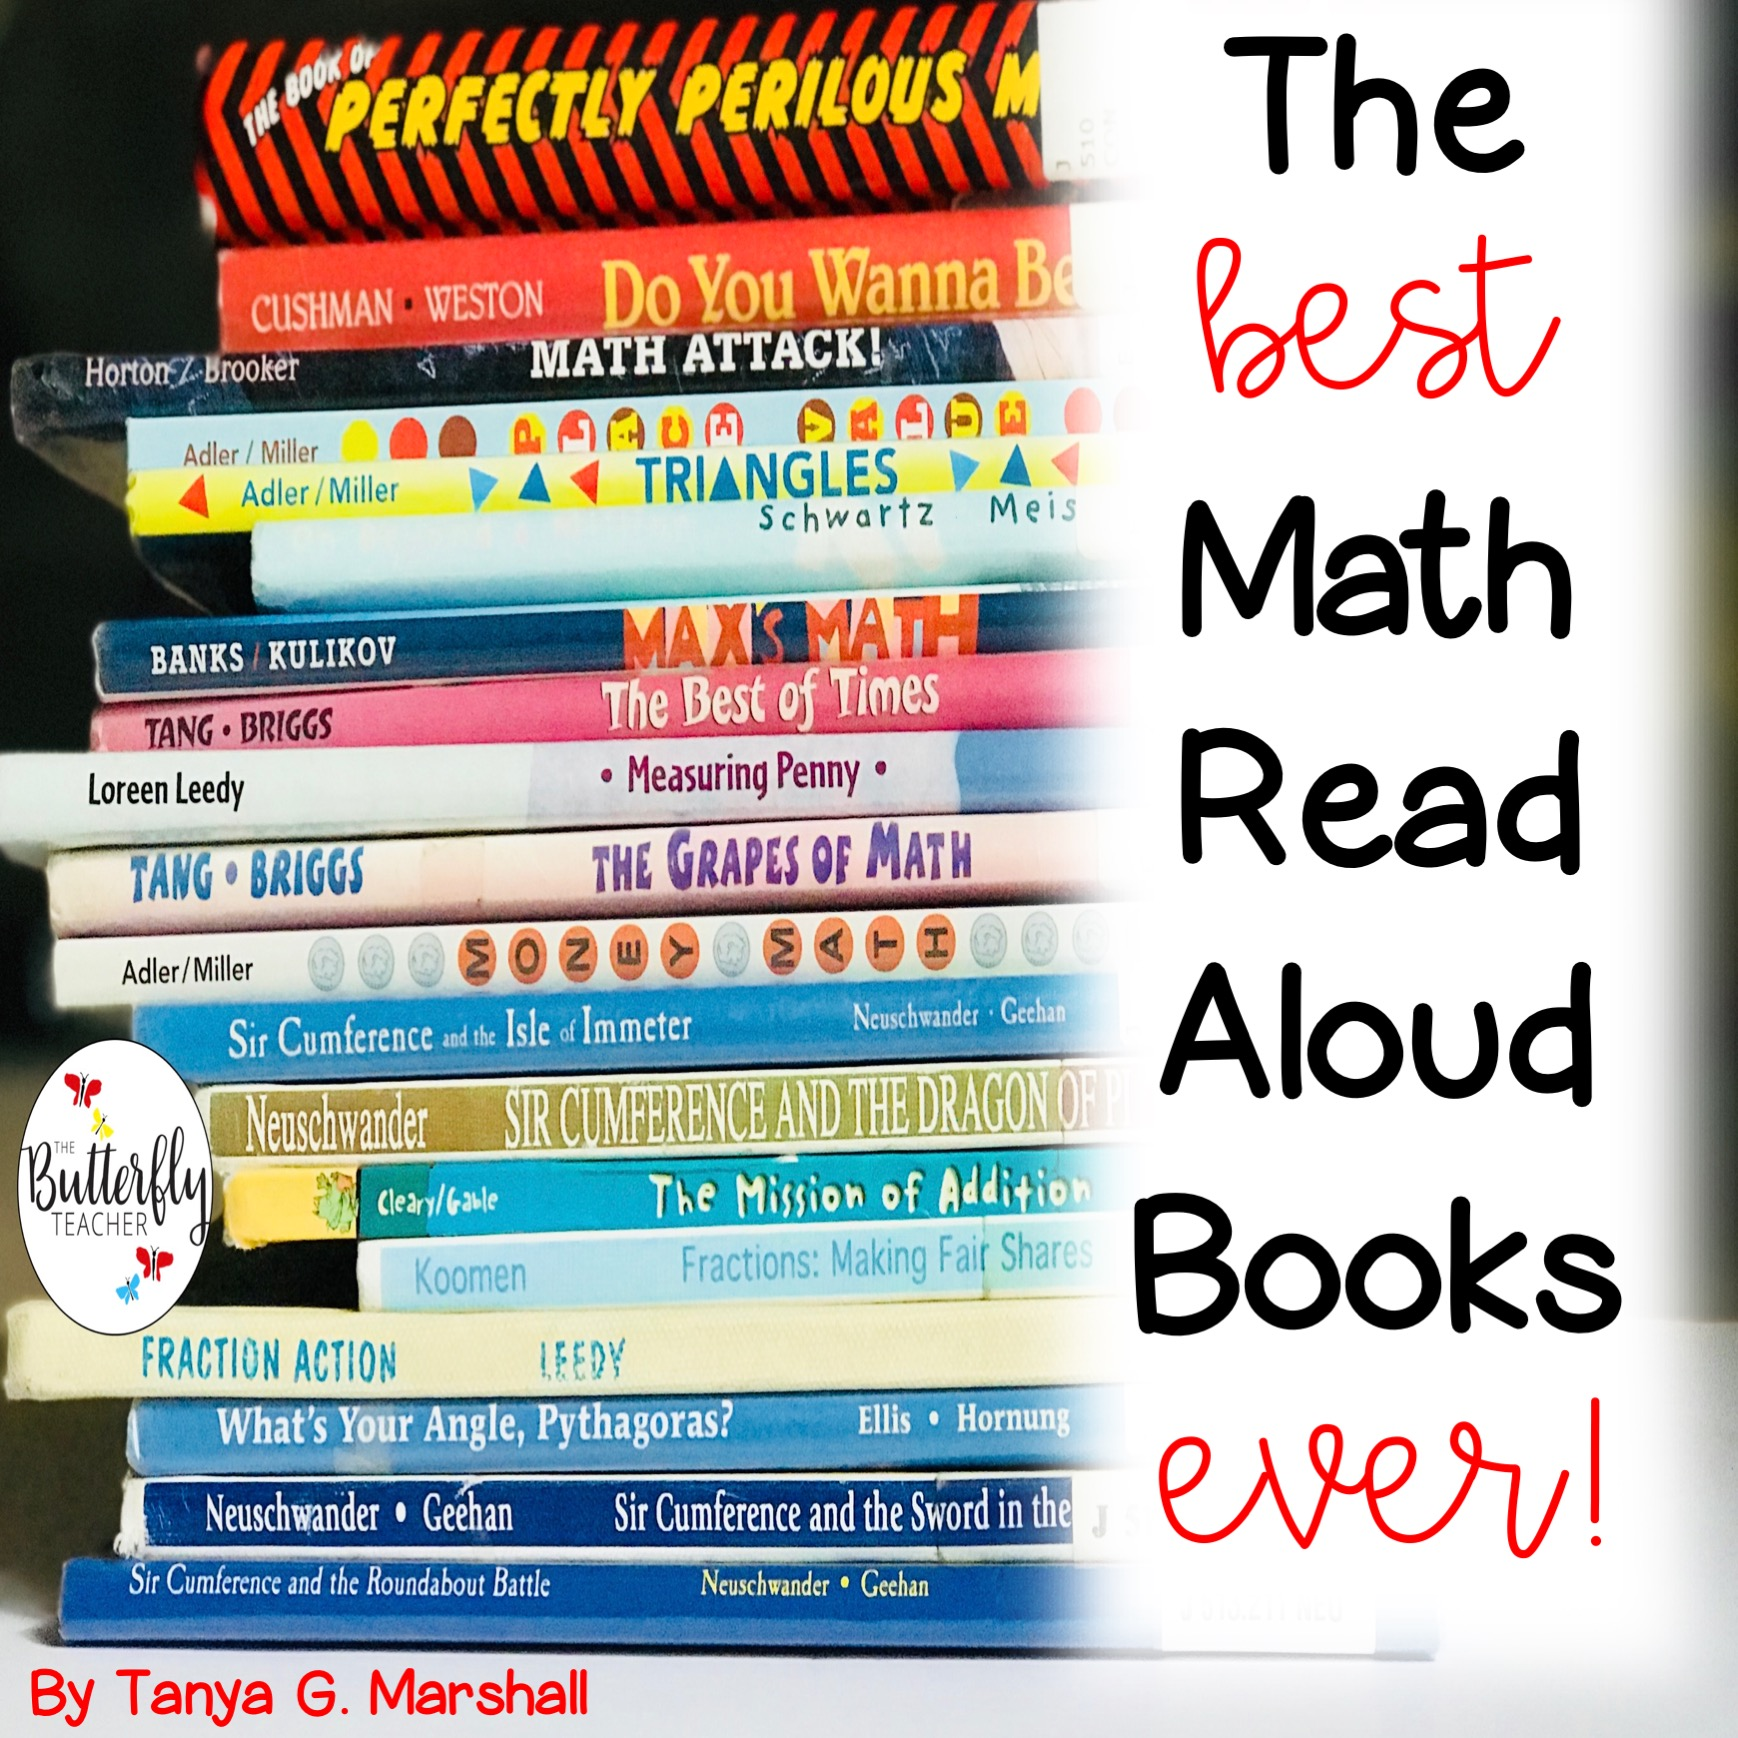 Best Read Ever The Best Books For Math Read Alouds The Butterfly Teacher